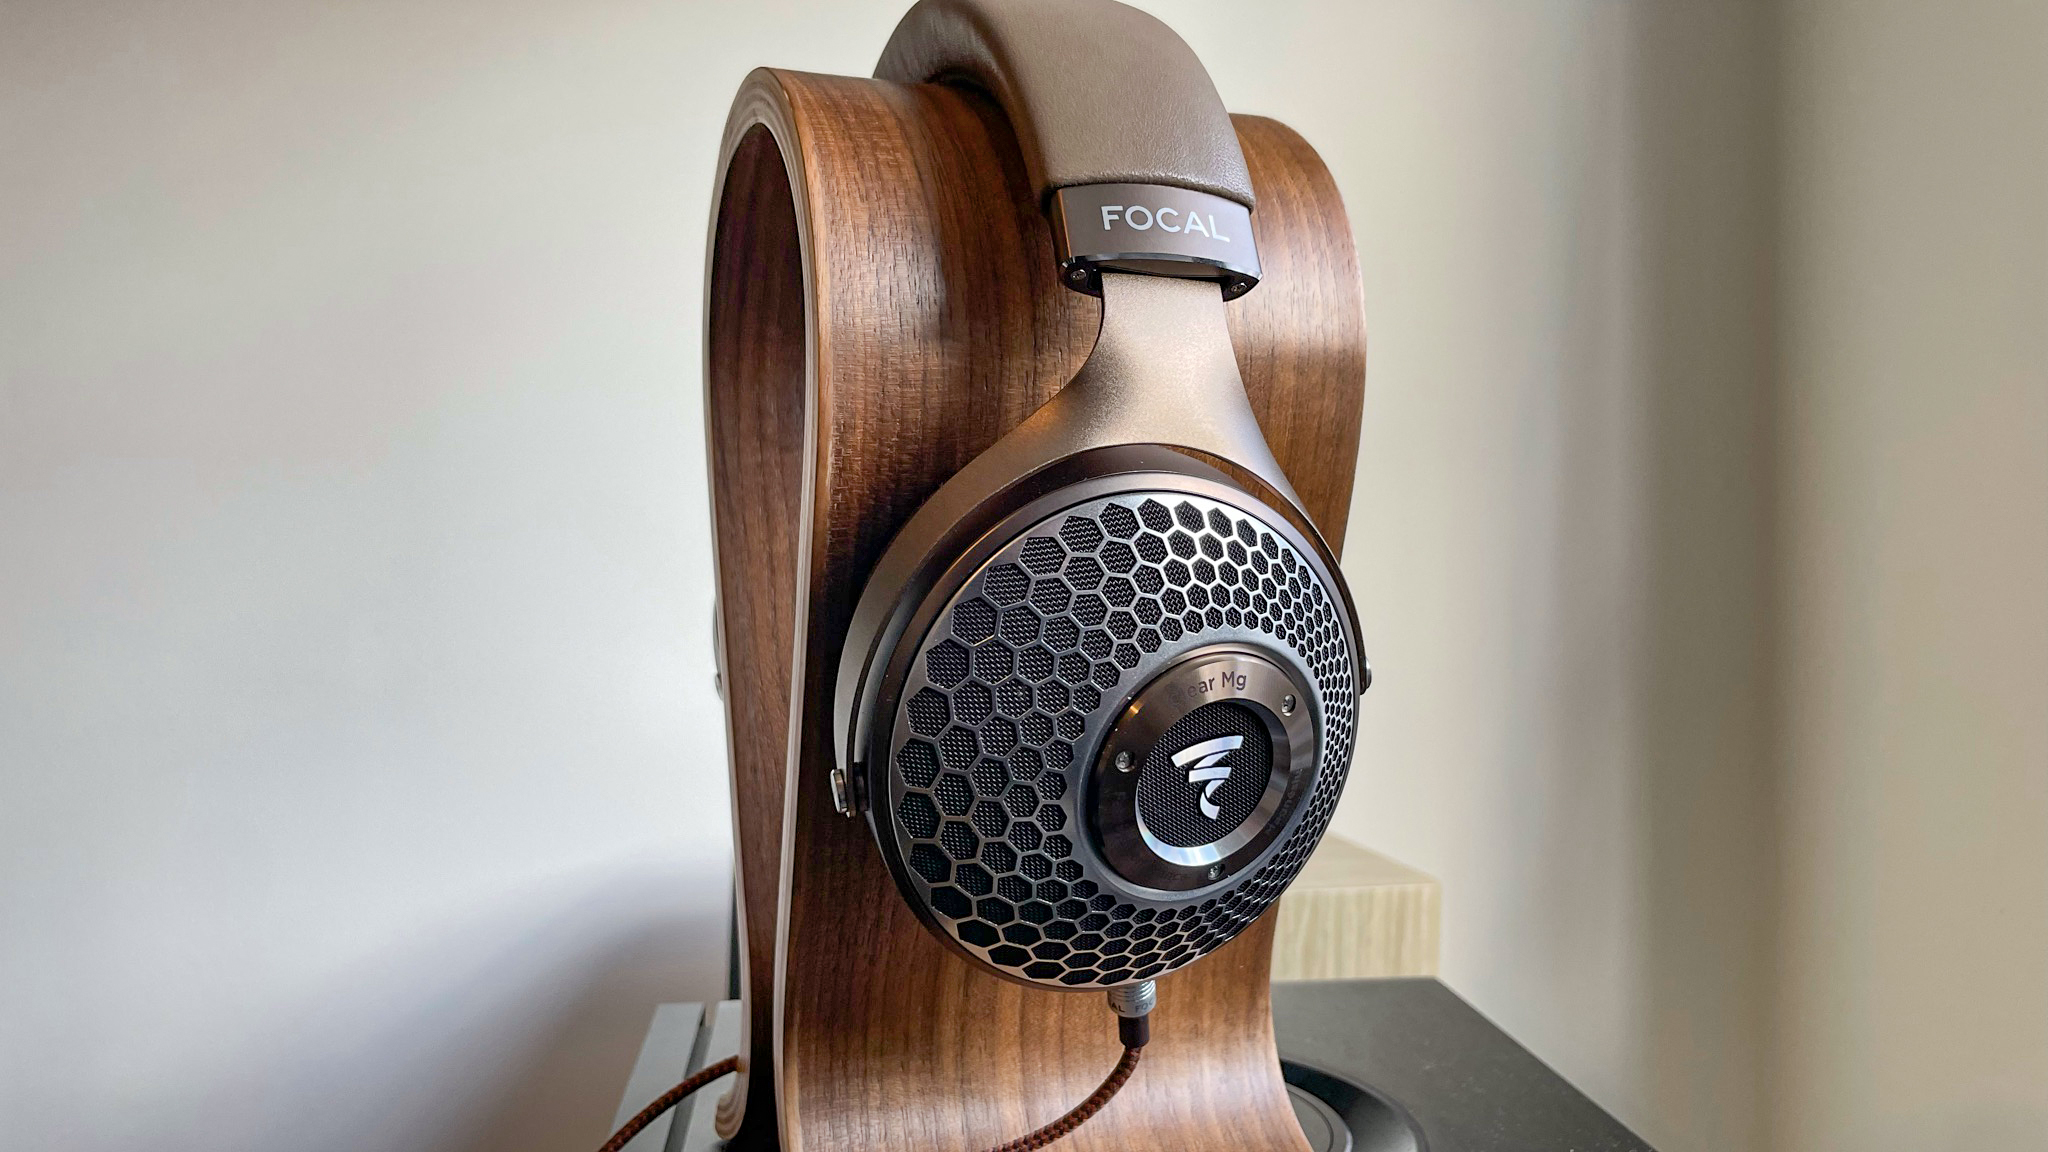 Focal Clear MG foto Geir Nordby